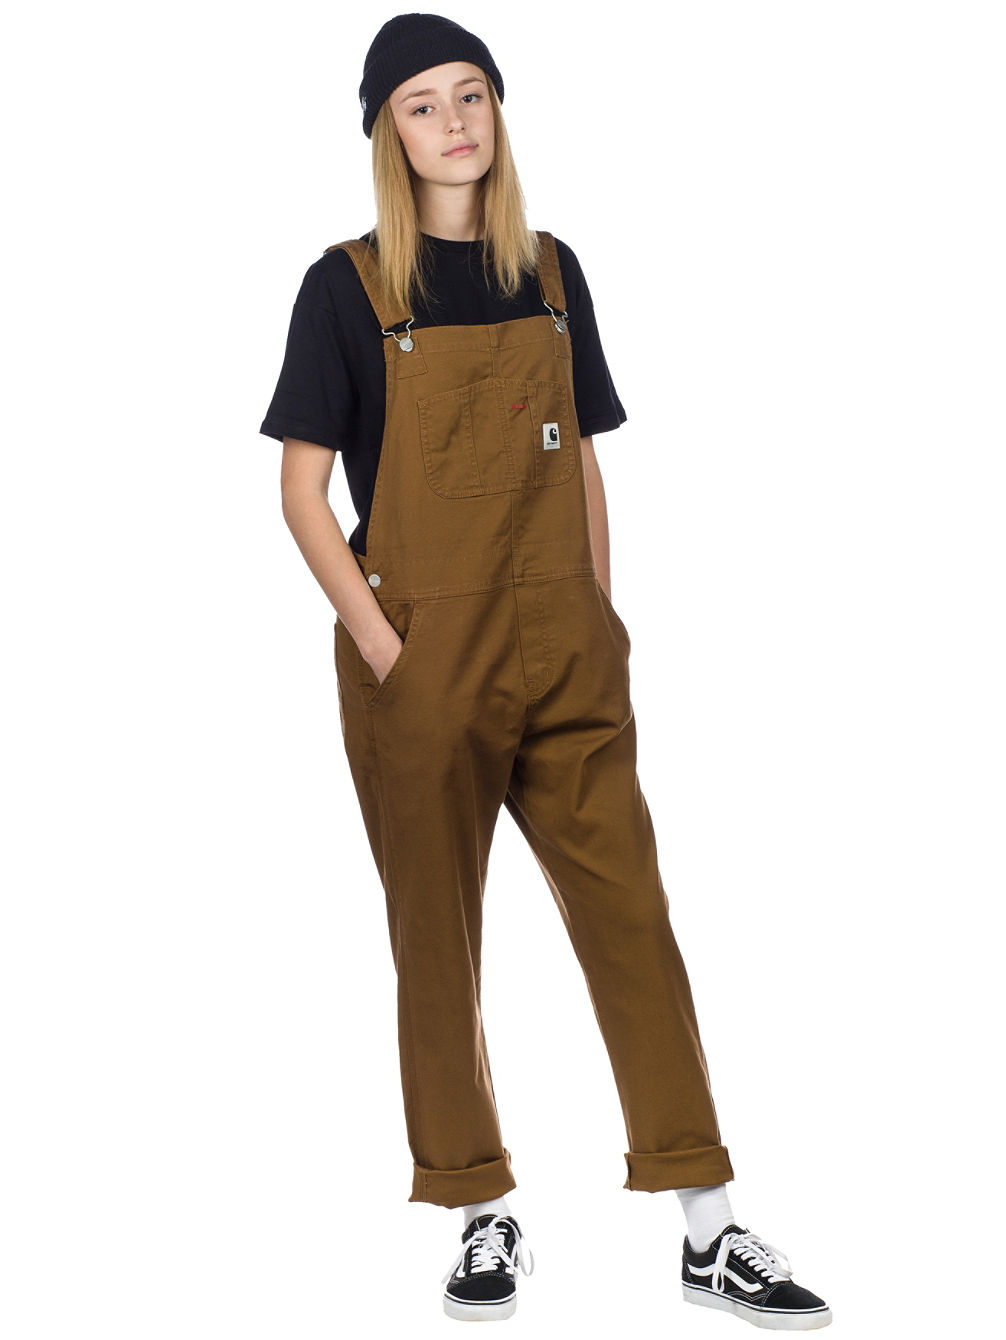 1ae045f597 Buy Carhartt WIP Bib Overall Pants online at Blue Tomato